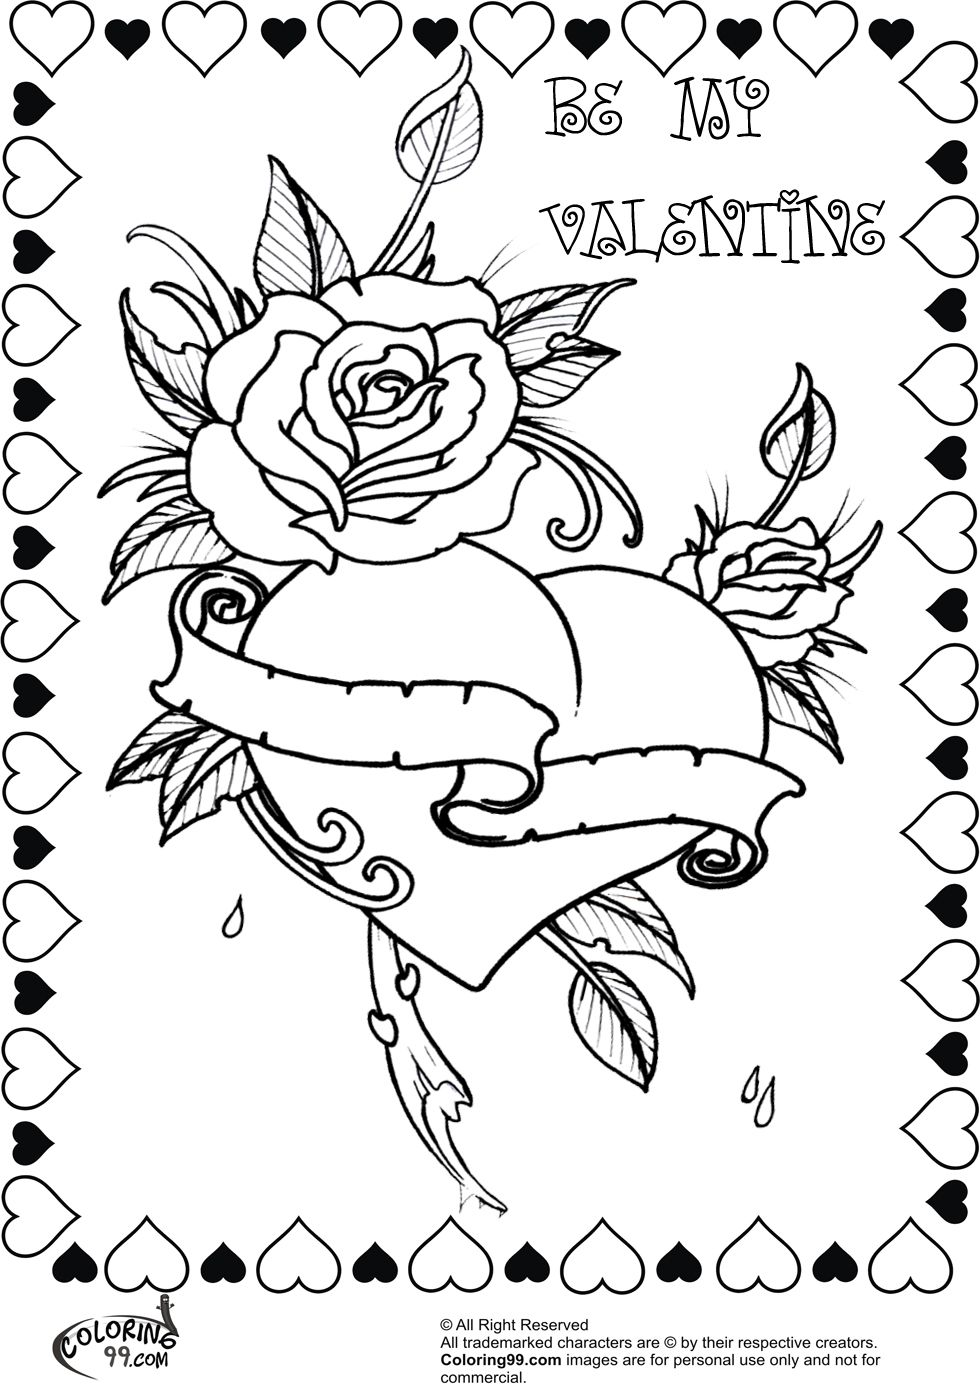 hearts and roses coloring pages love heart coloring page heart